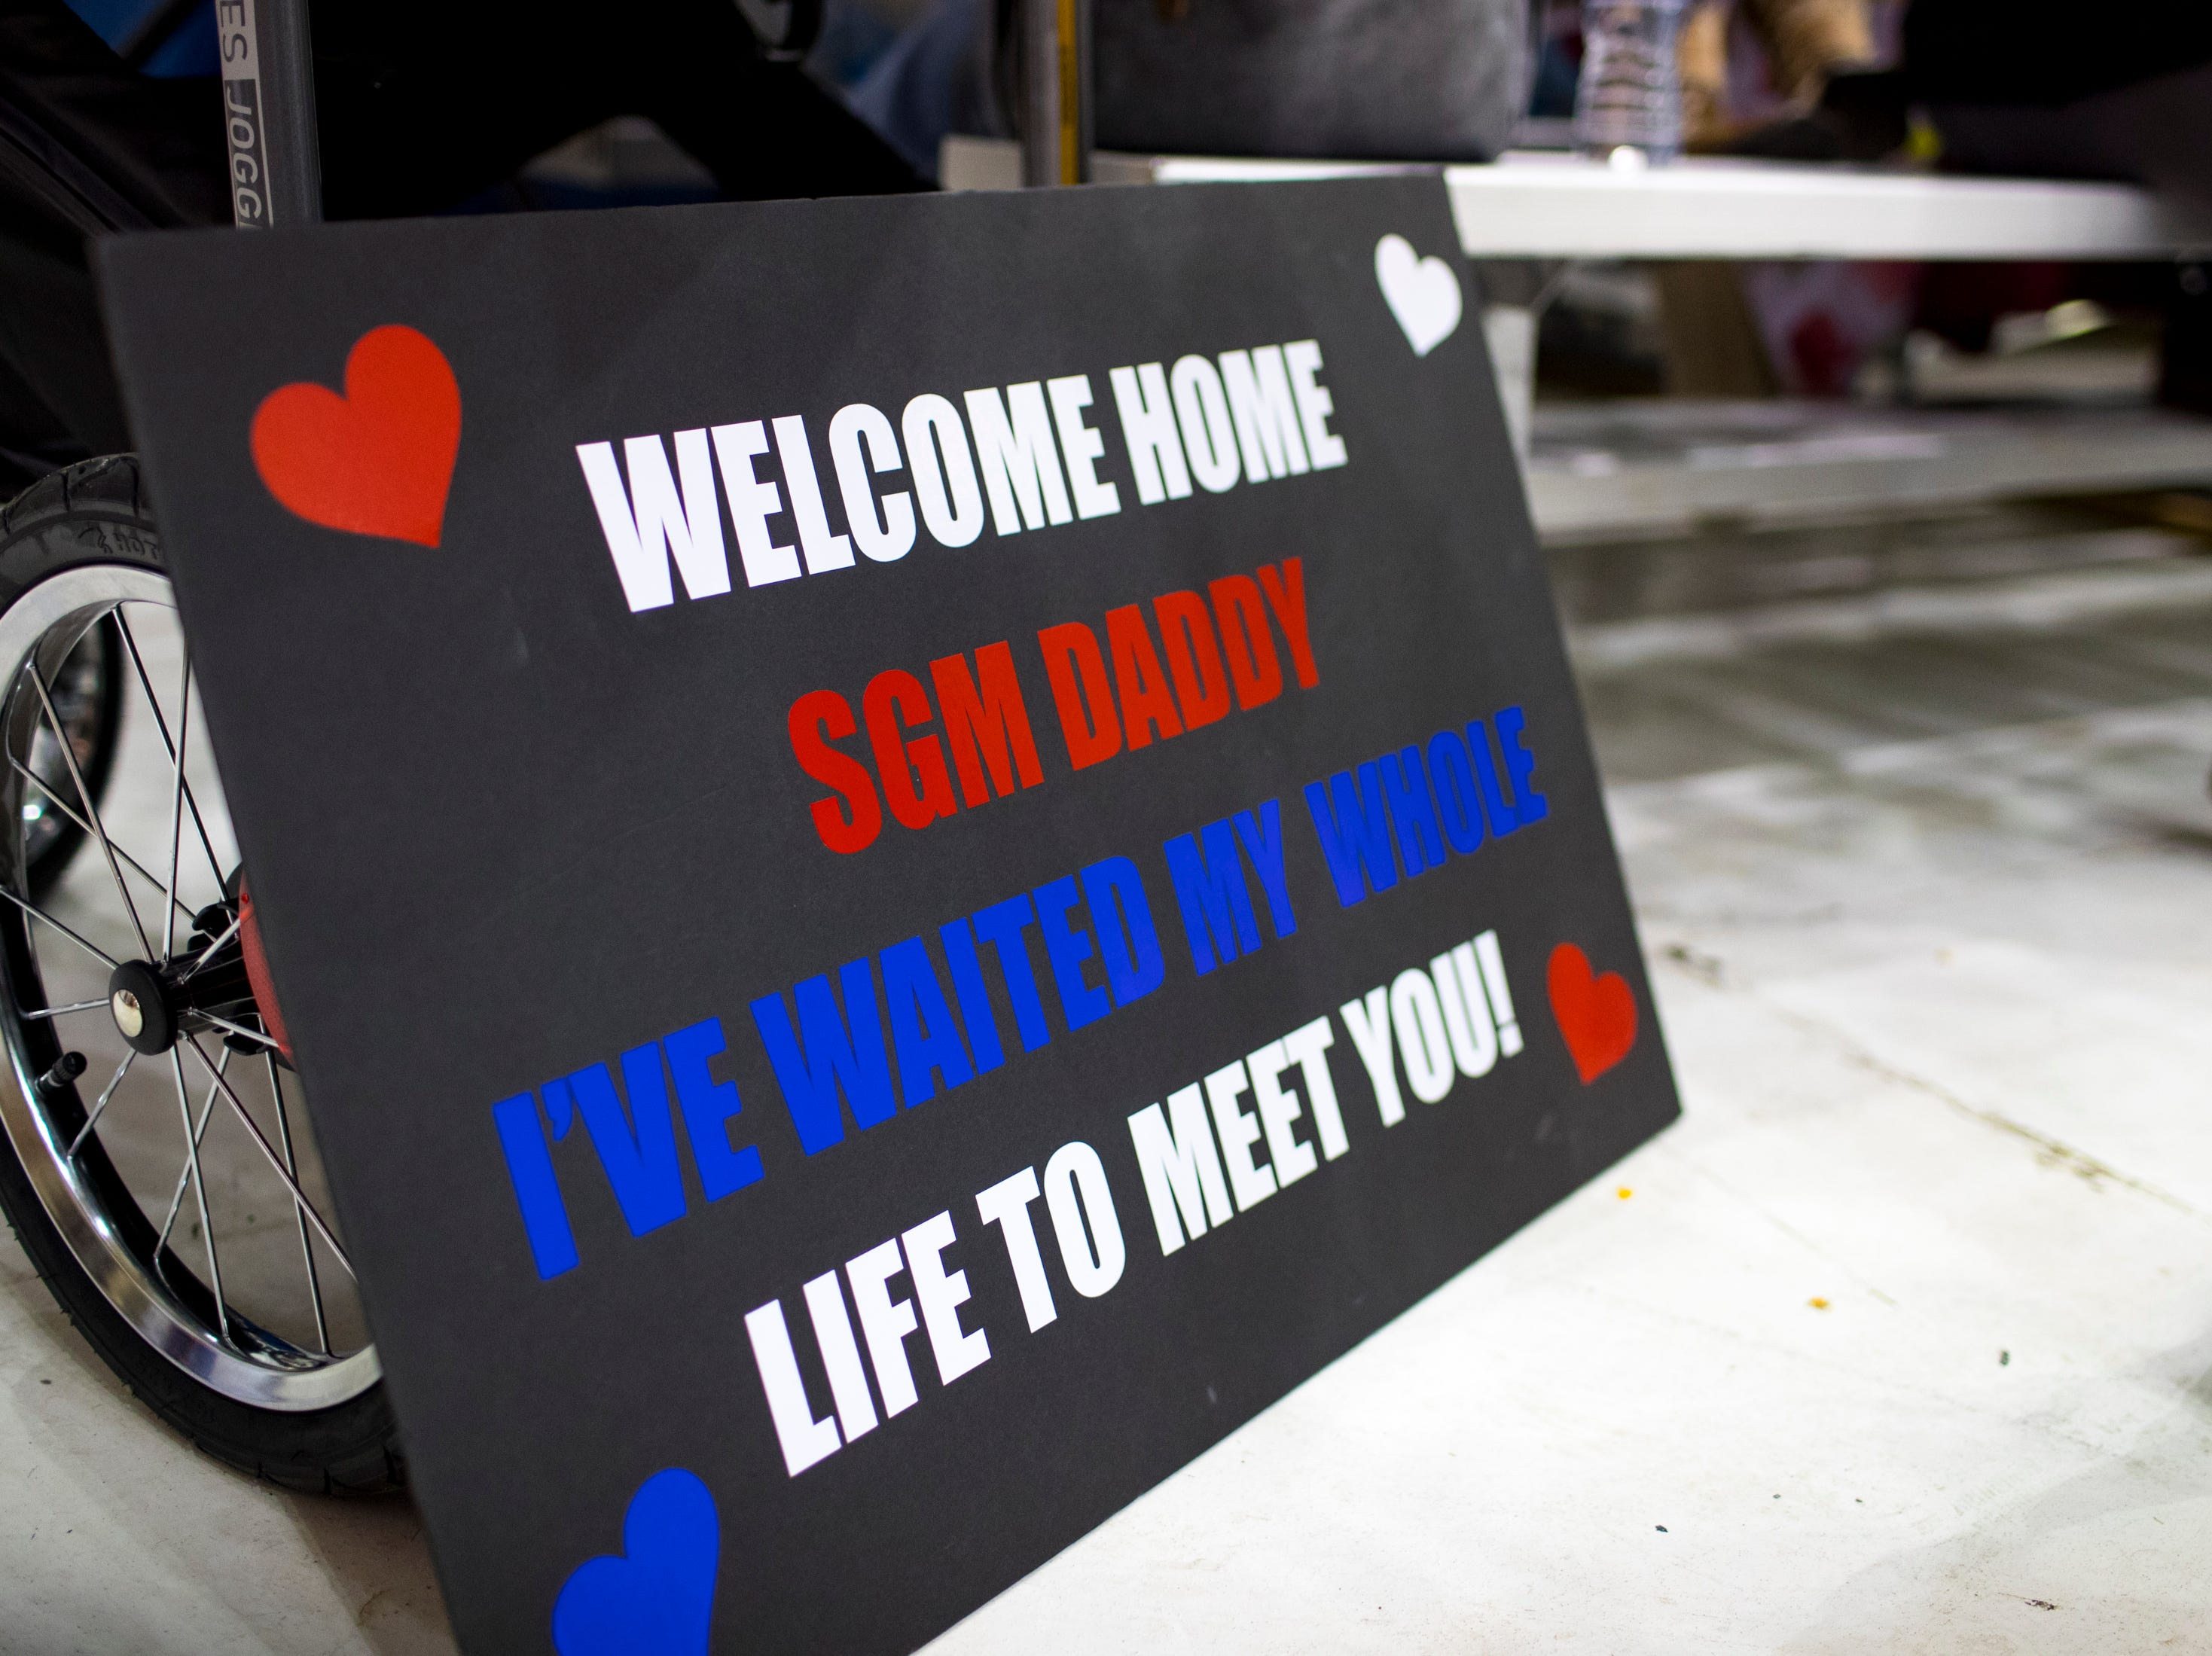 A sign is ready to welcome home Sgt. Major Kevin Peterson, who will see his newborn son, Logan Grey Peterson, 1 week, for the first time during the welcome home ceremony for the 2nd Battalion, 44th Air Defense Artillery Regiment and 101st Airborne Division at Fort Campbell in the early hours of Monday, Nov. 19, 2018. The soldiers were returning from a 9-month deployment in Afghanistan.